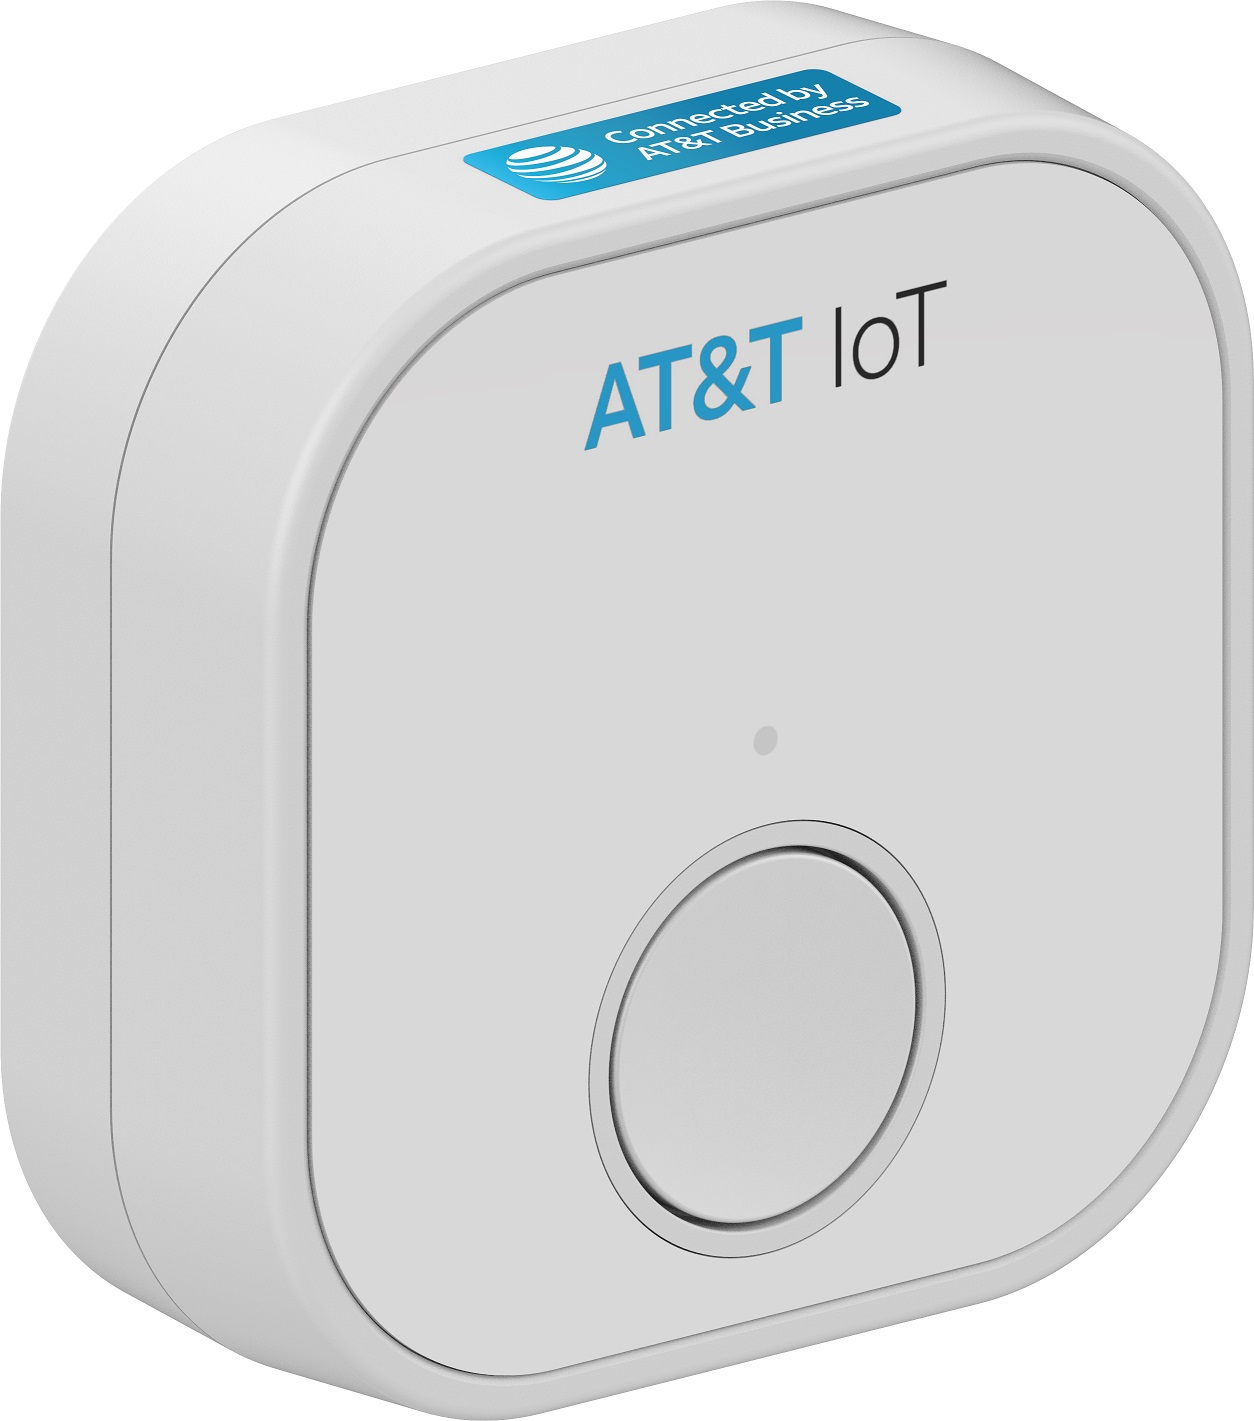 IoT Starter Kits, SIM cards, and Data Plans - AT&T IoT Marketplace